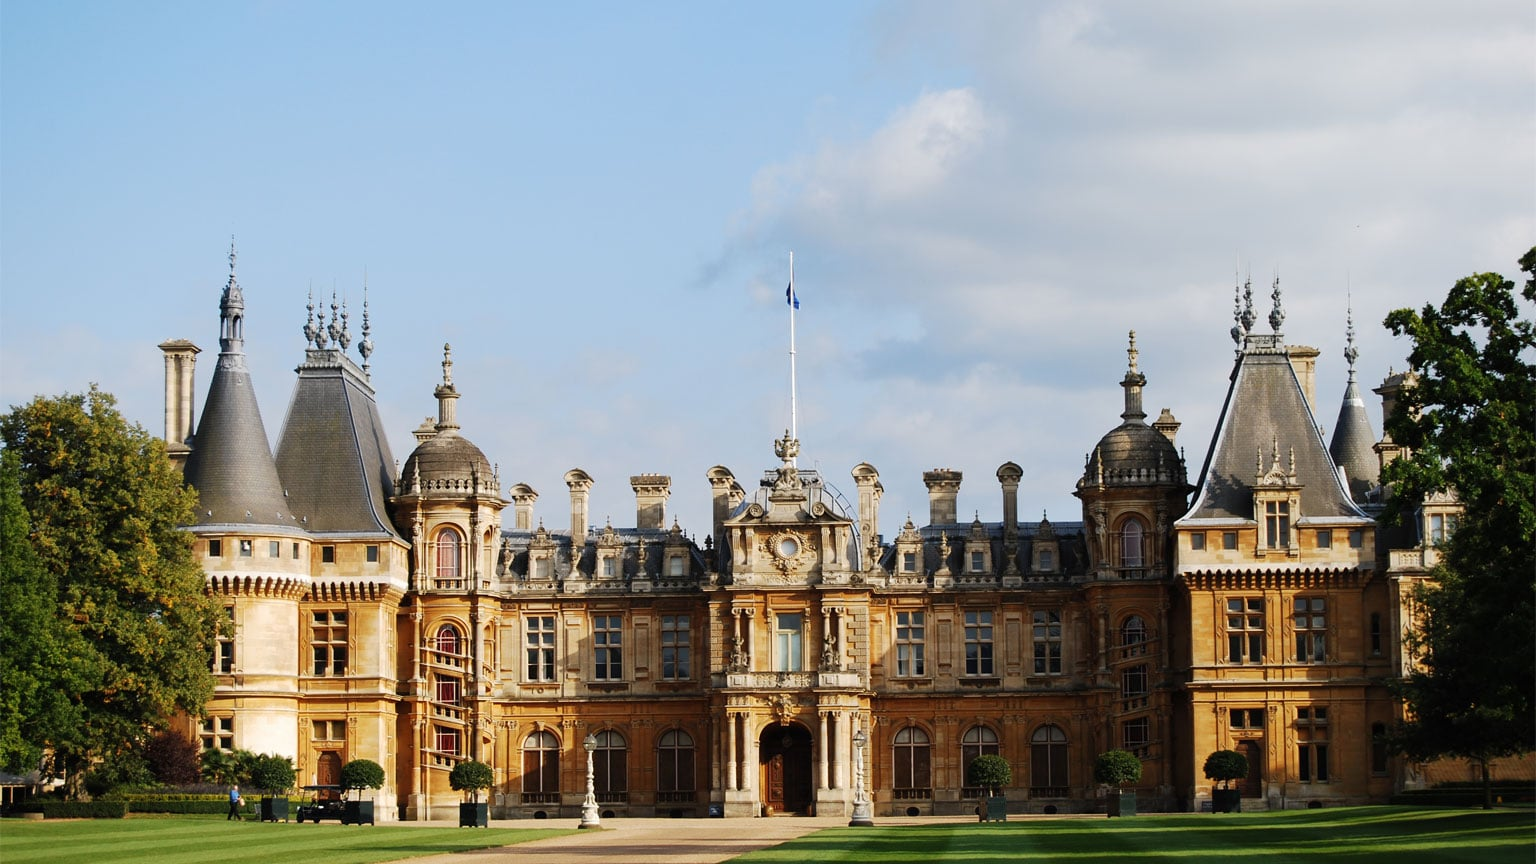 1. Waddesdon Manor in Buckinghamshire - Free entry with National Art Pass